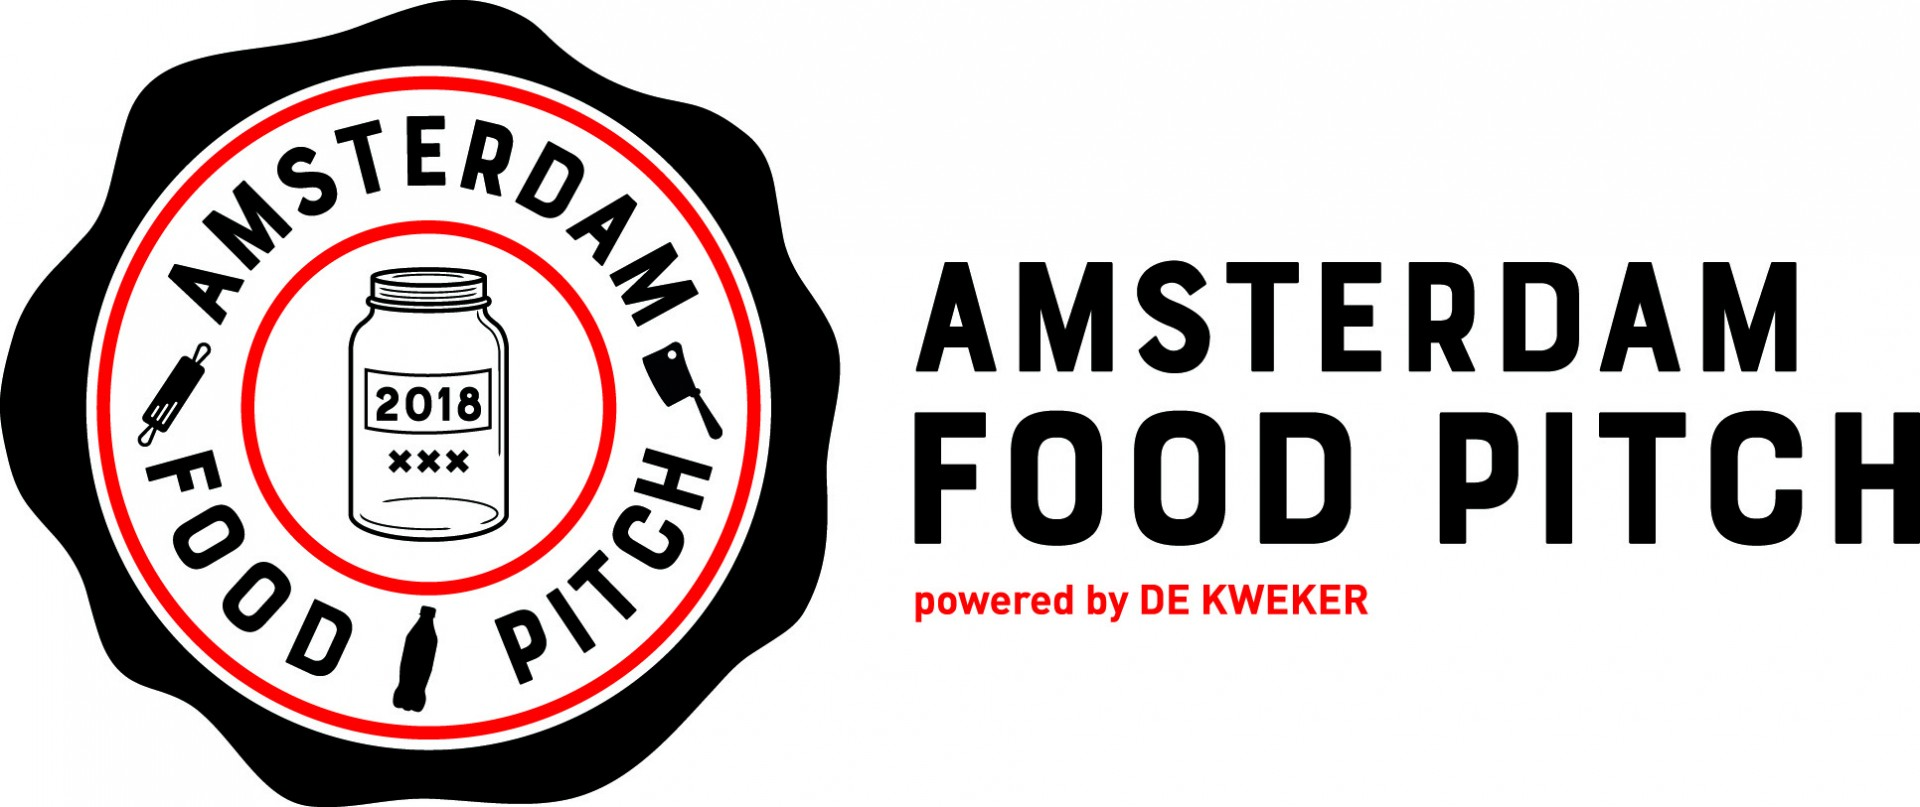 Amsterdam Food Pitch logo